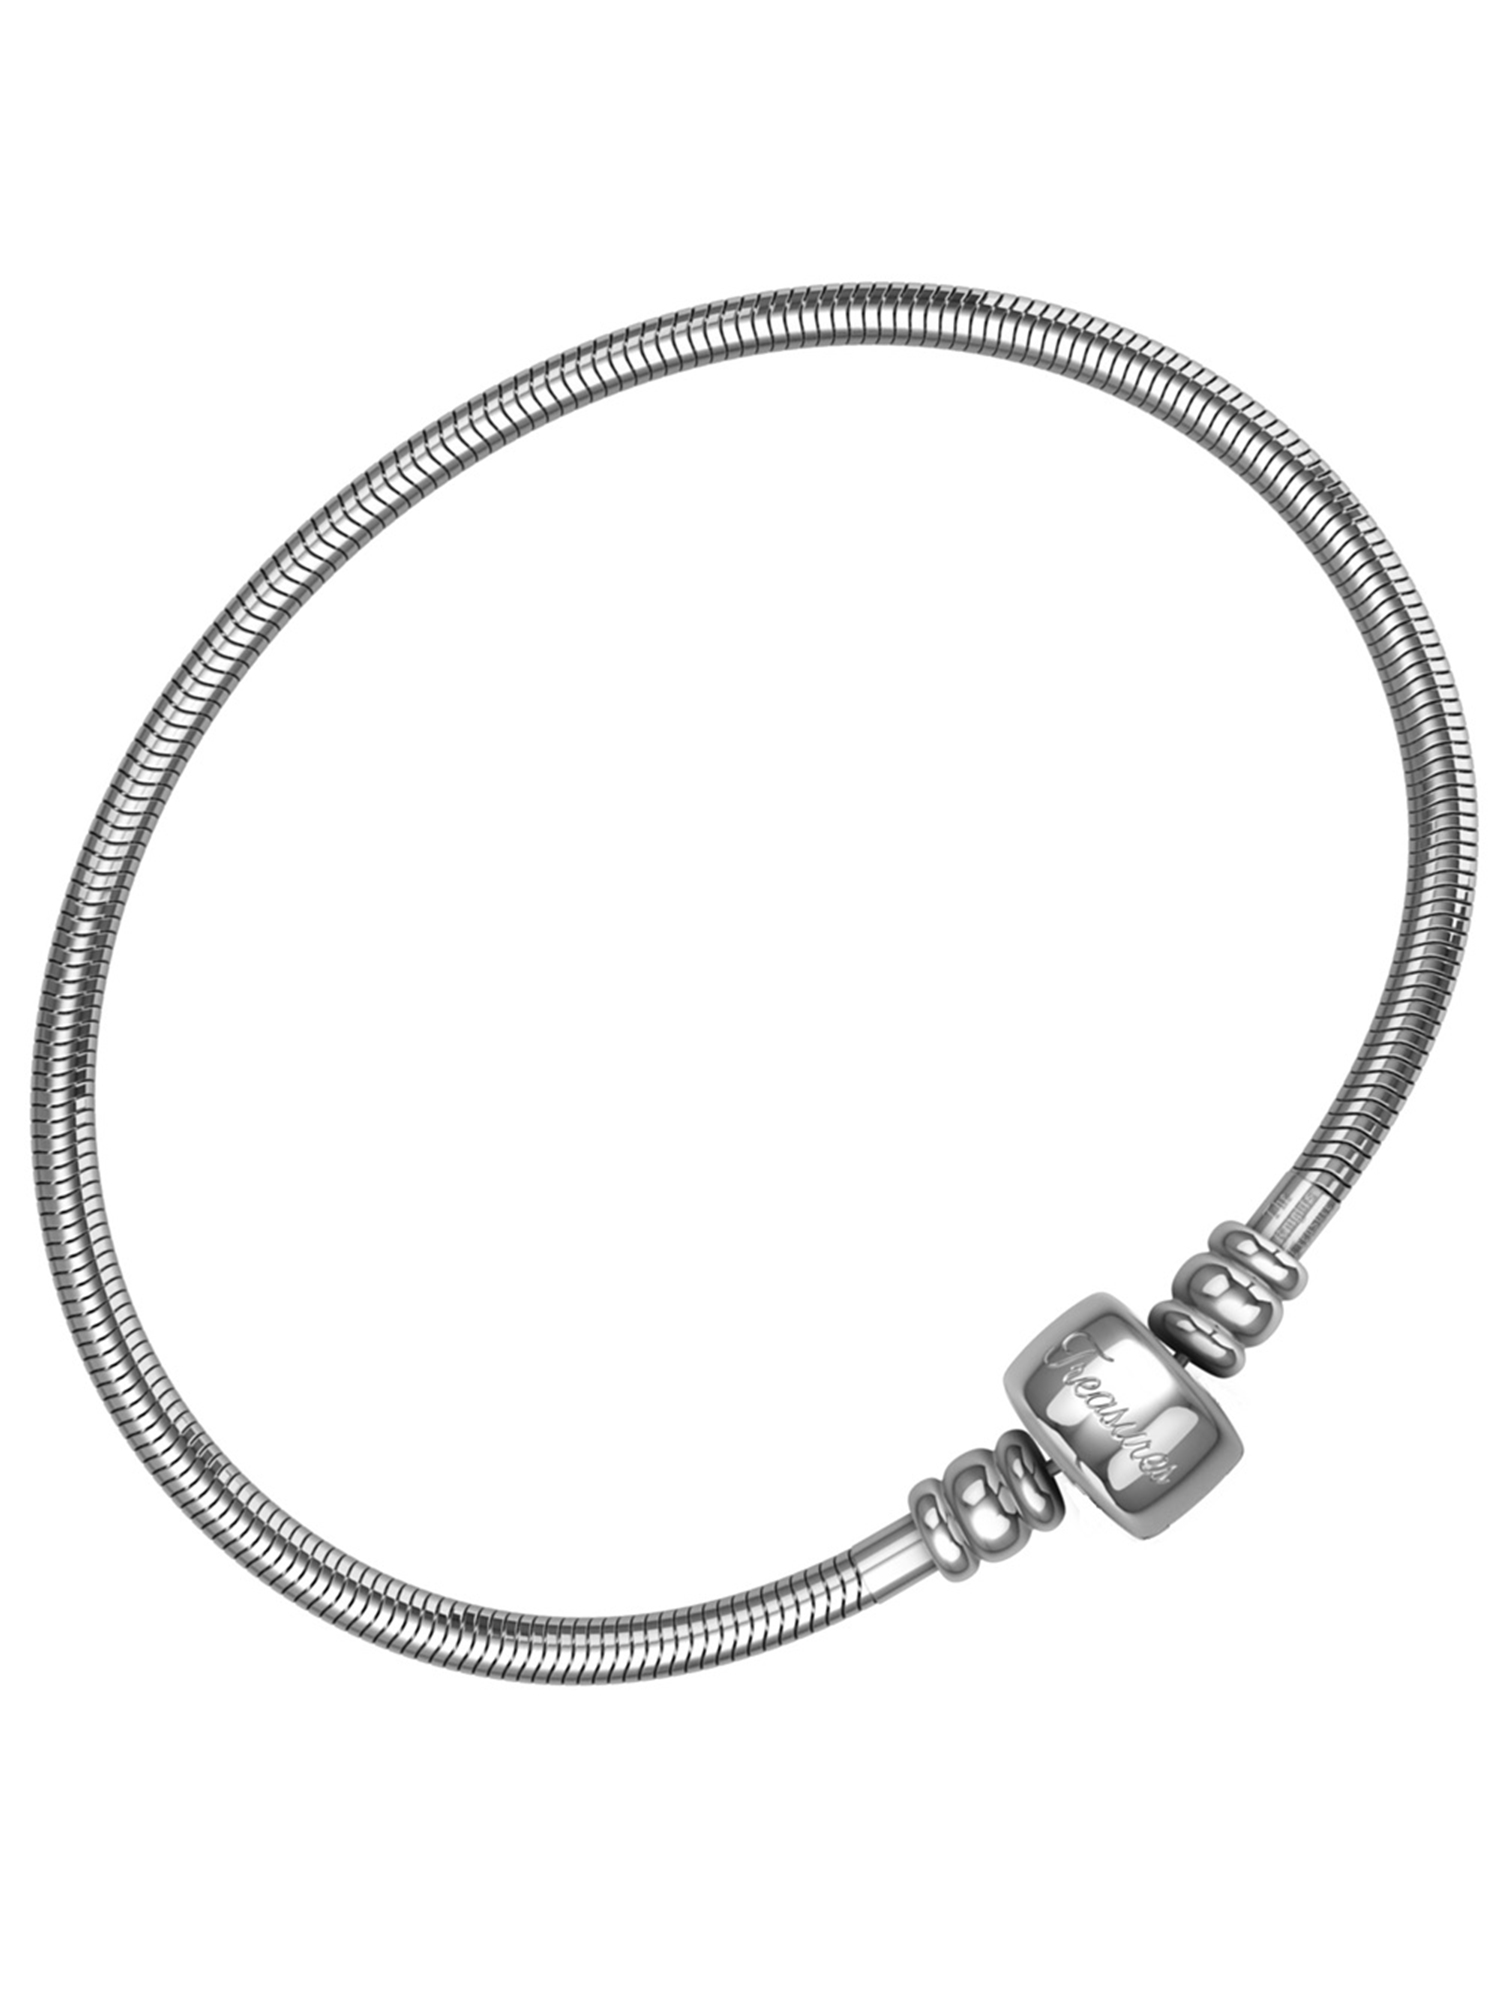 Charm Bracelet For Women, Stainless Steel Snake Chain, Fits Pandora Charms, Barrel Snap Clasp, 7.5 Inch (19 cm)